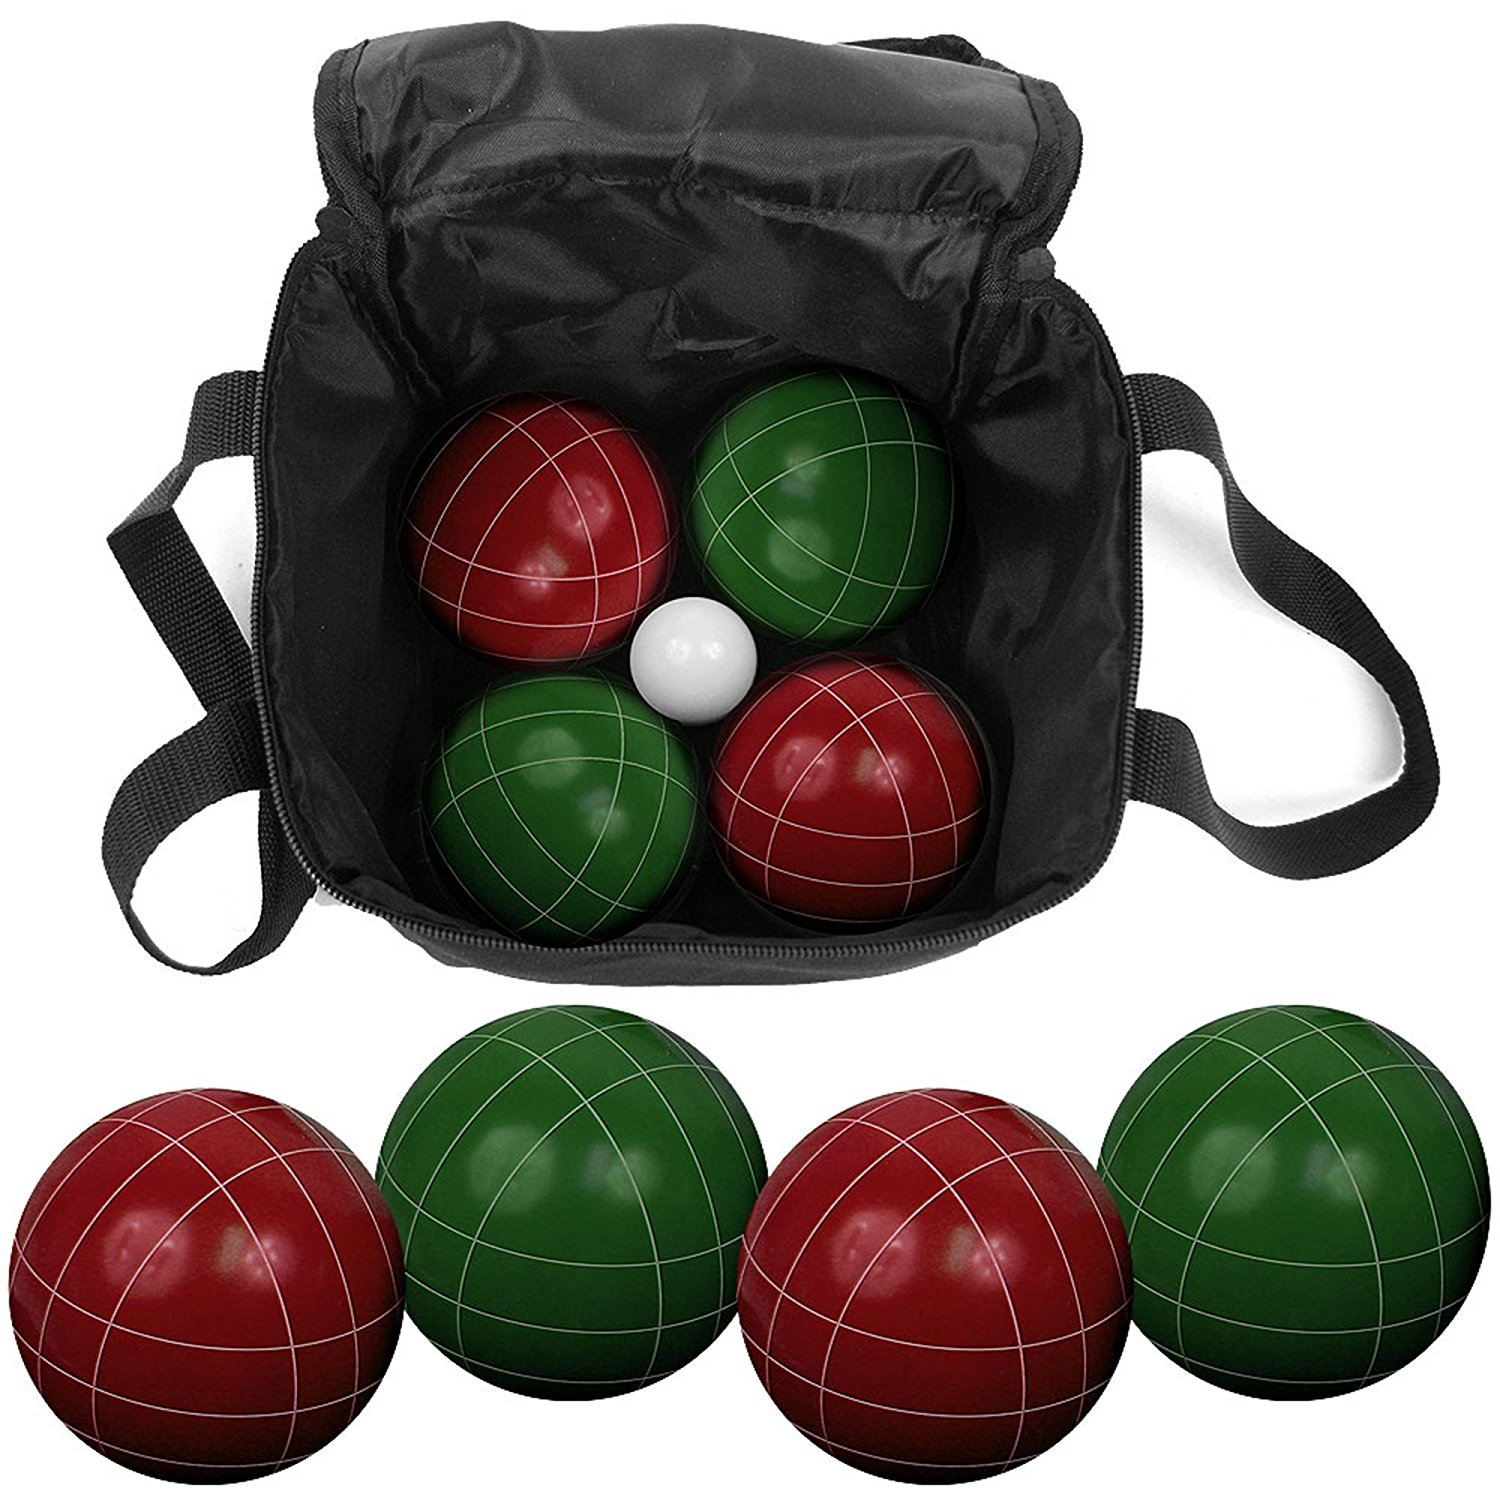 Bring the party with you with this durable, travel Bocce set. - $